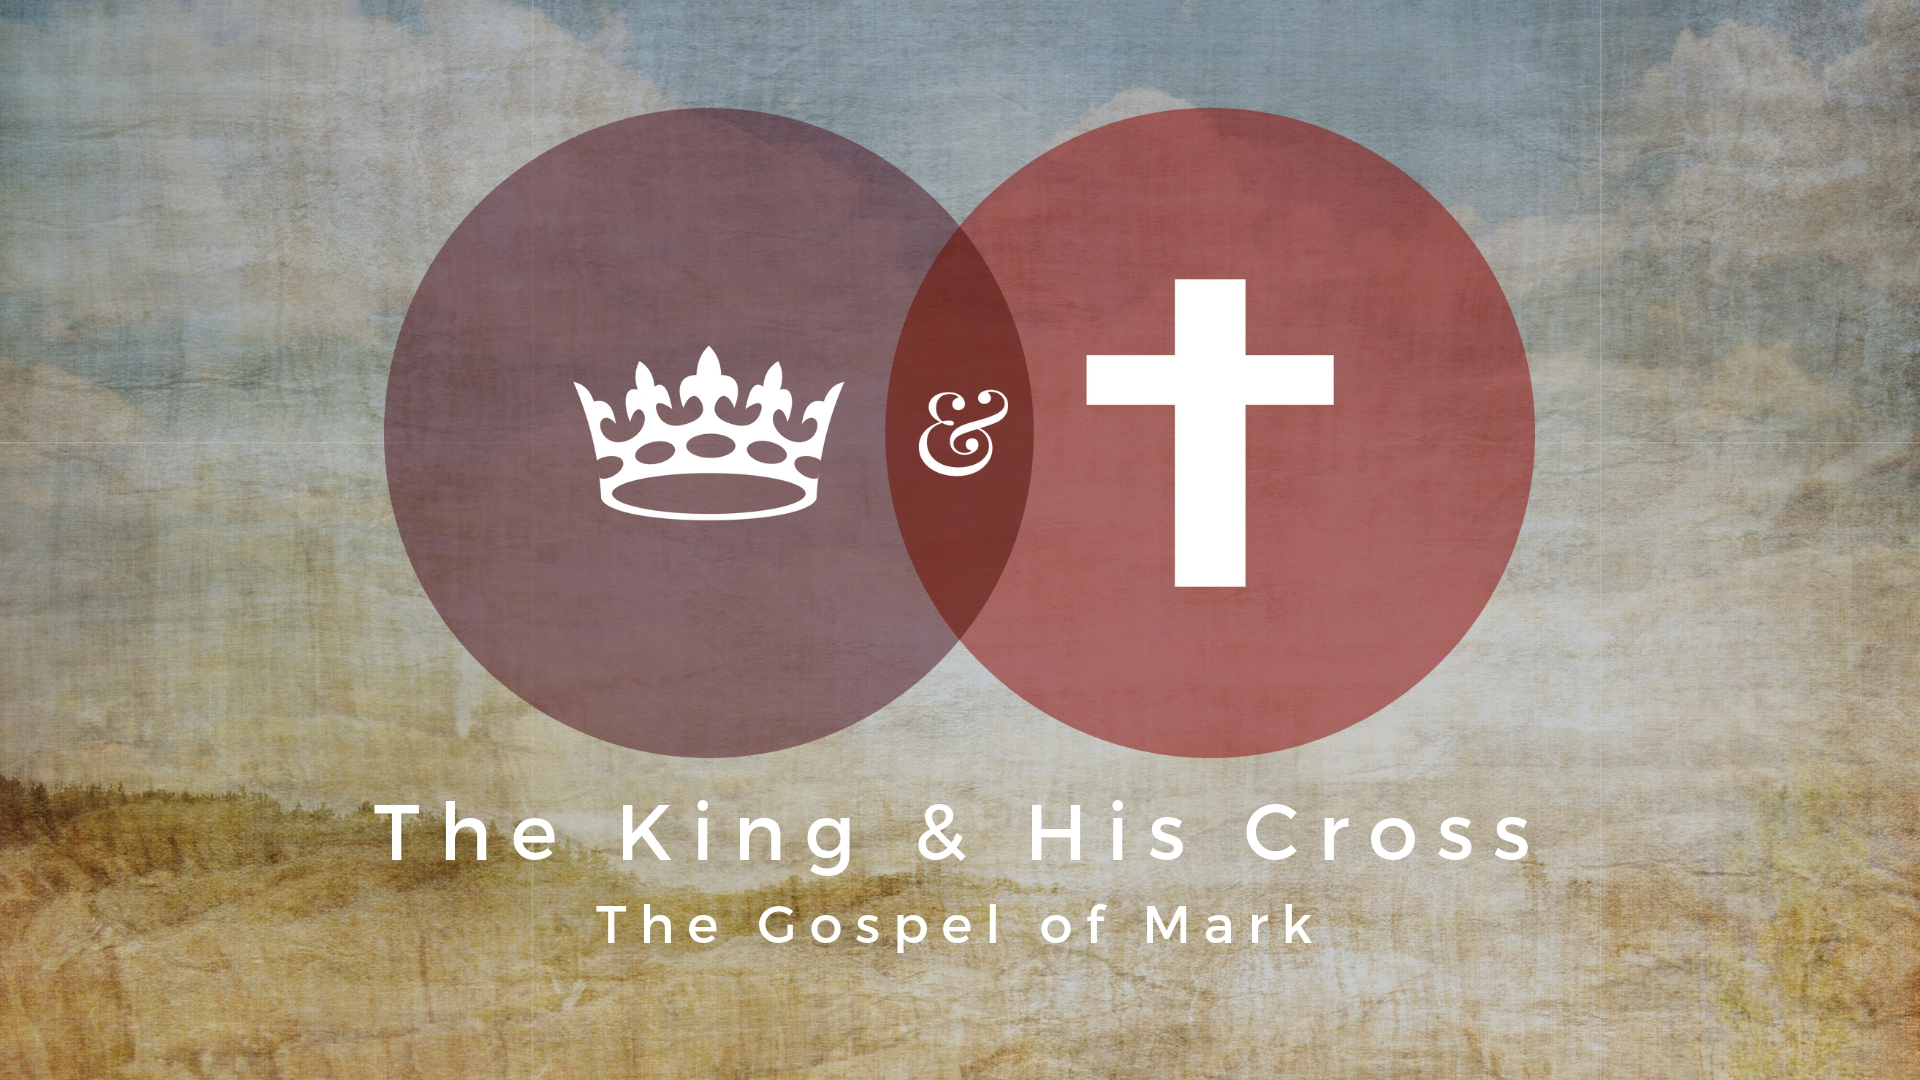 The King and His Cross